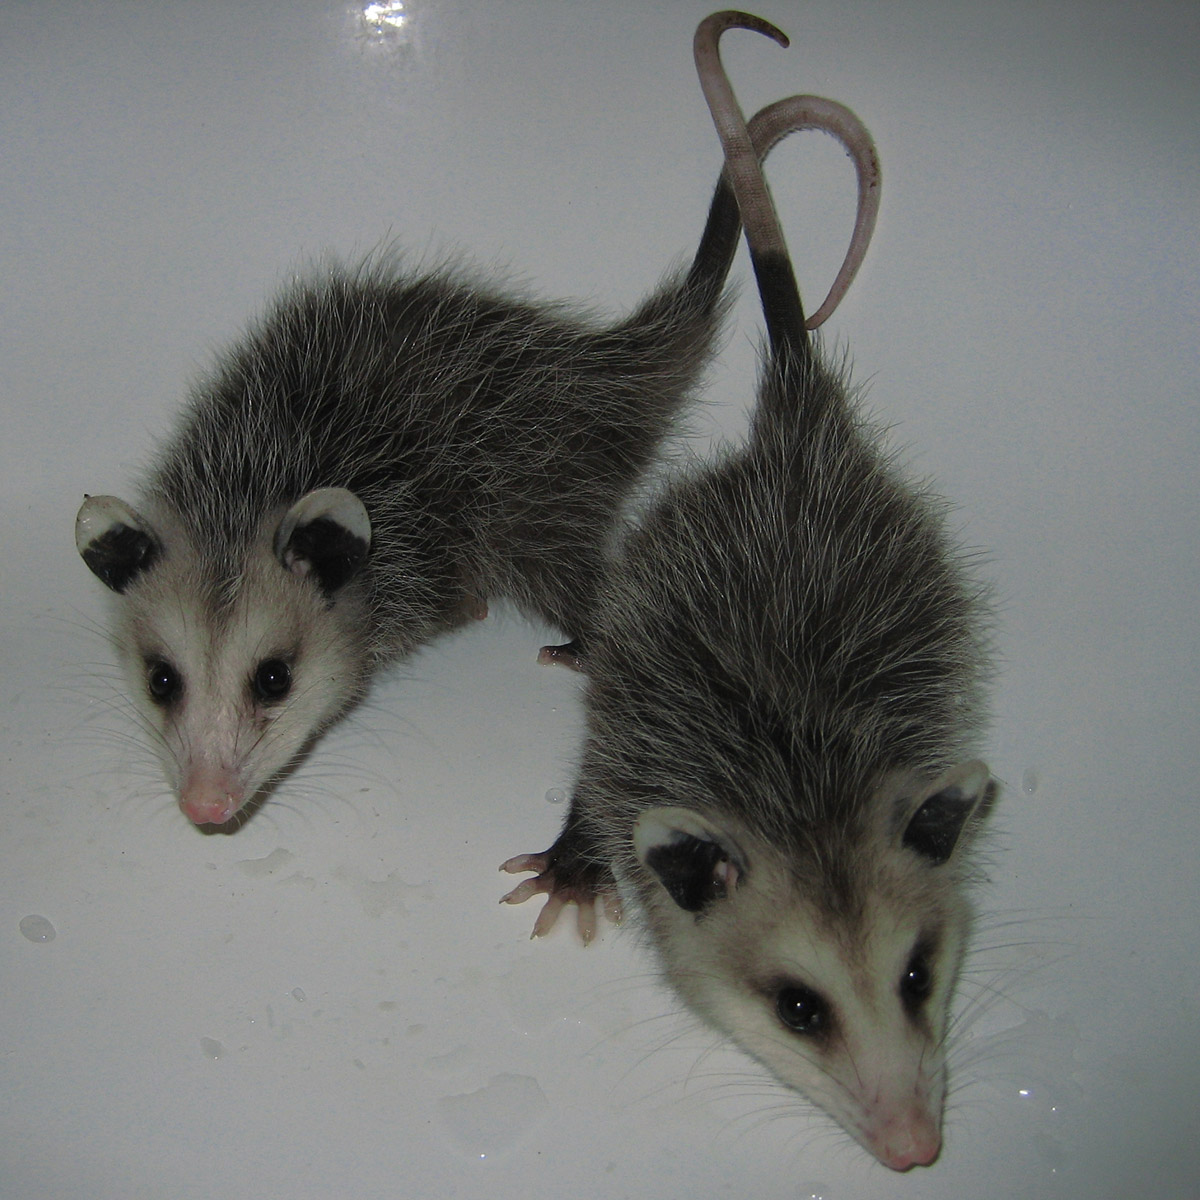 Cute baby possum pictures